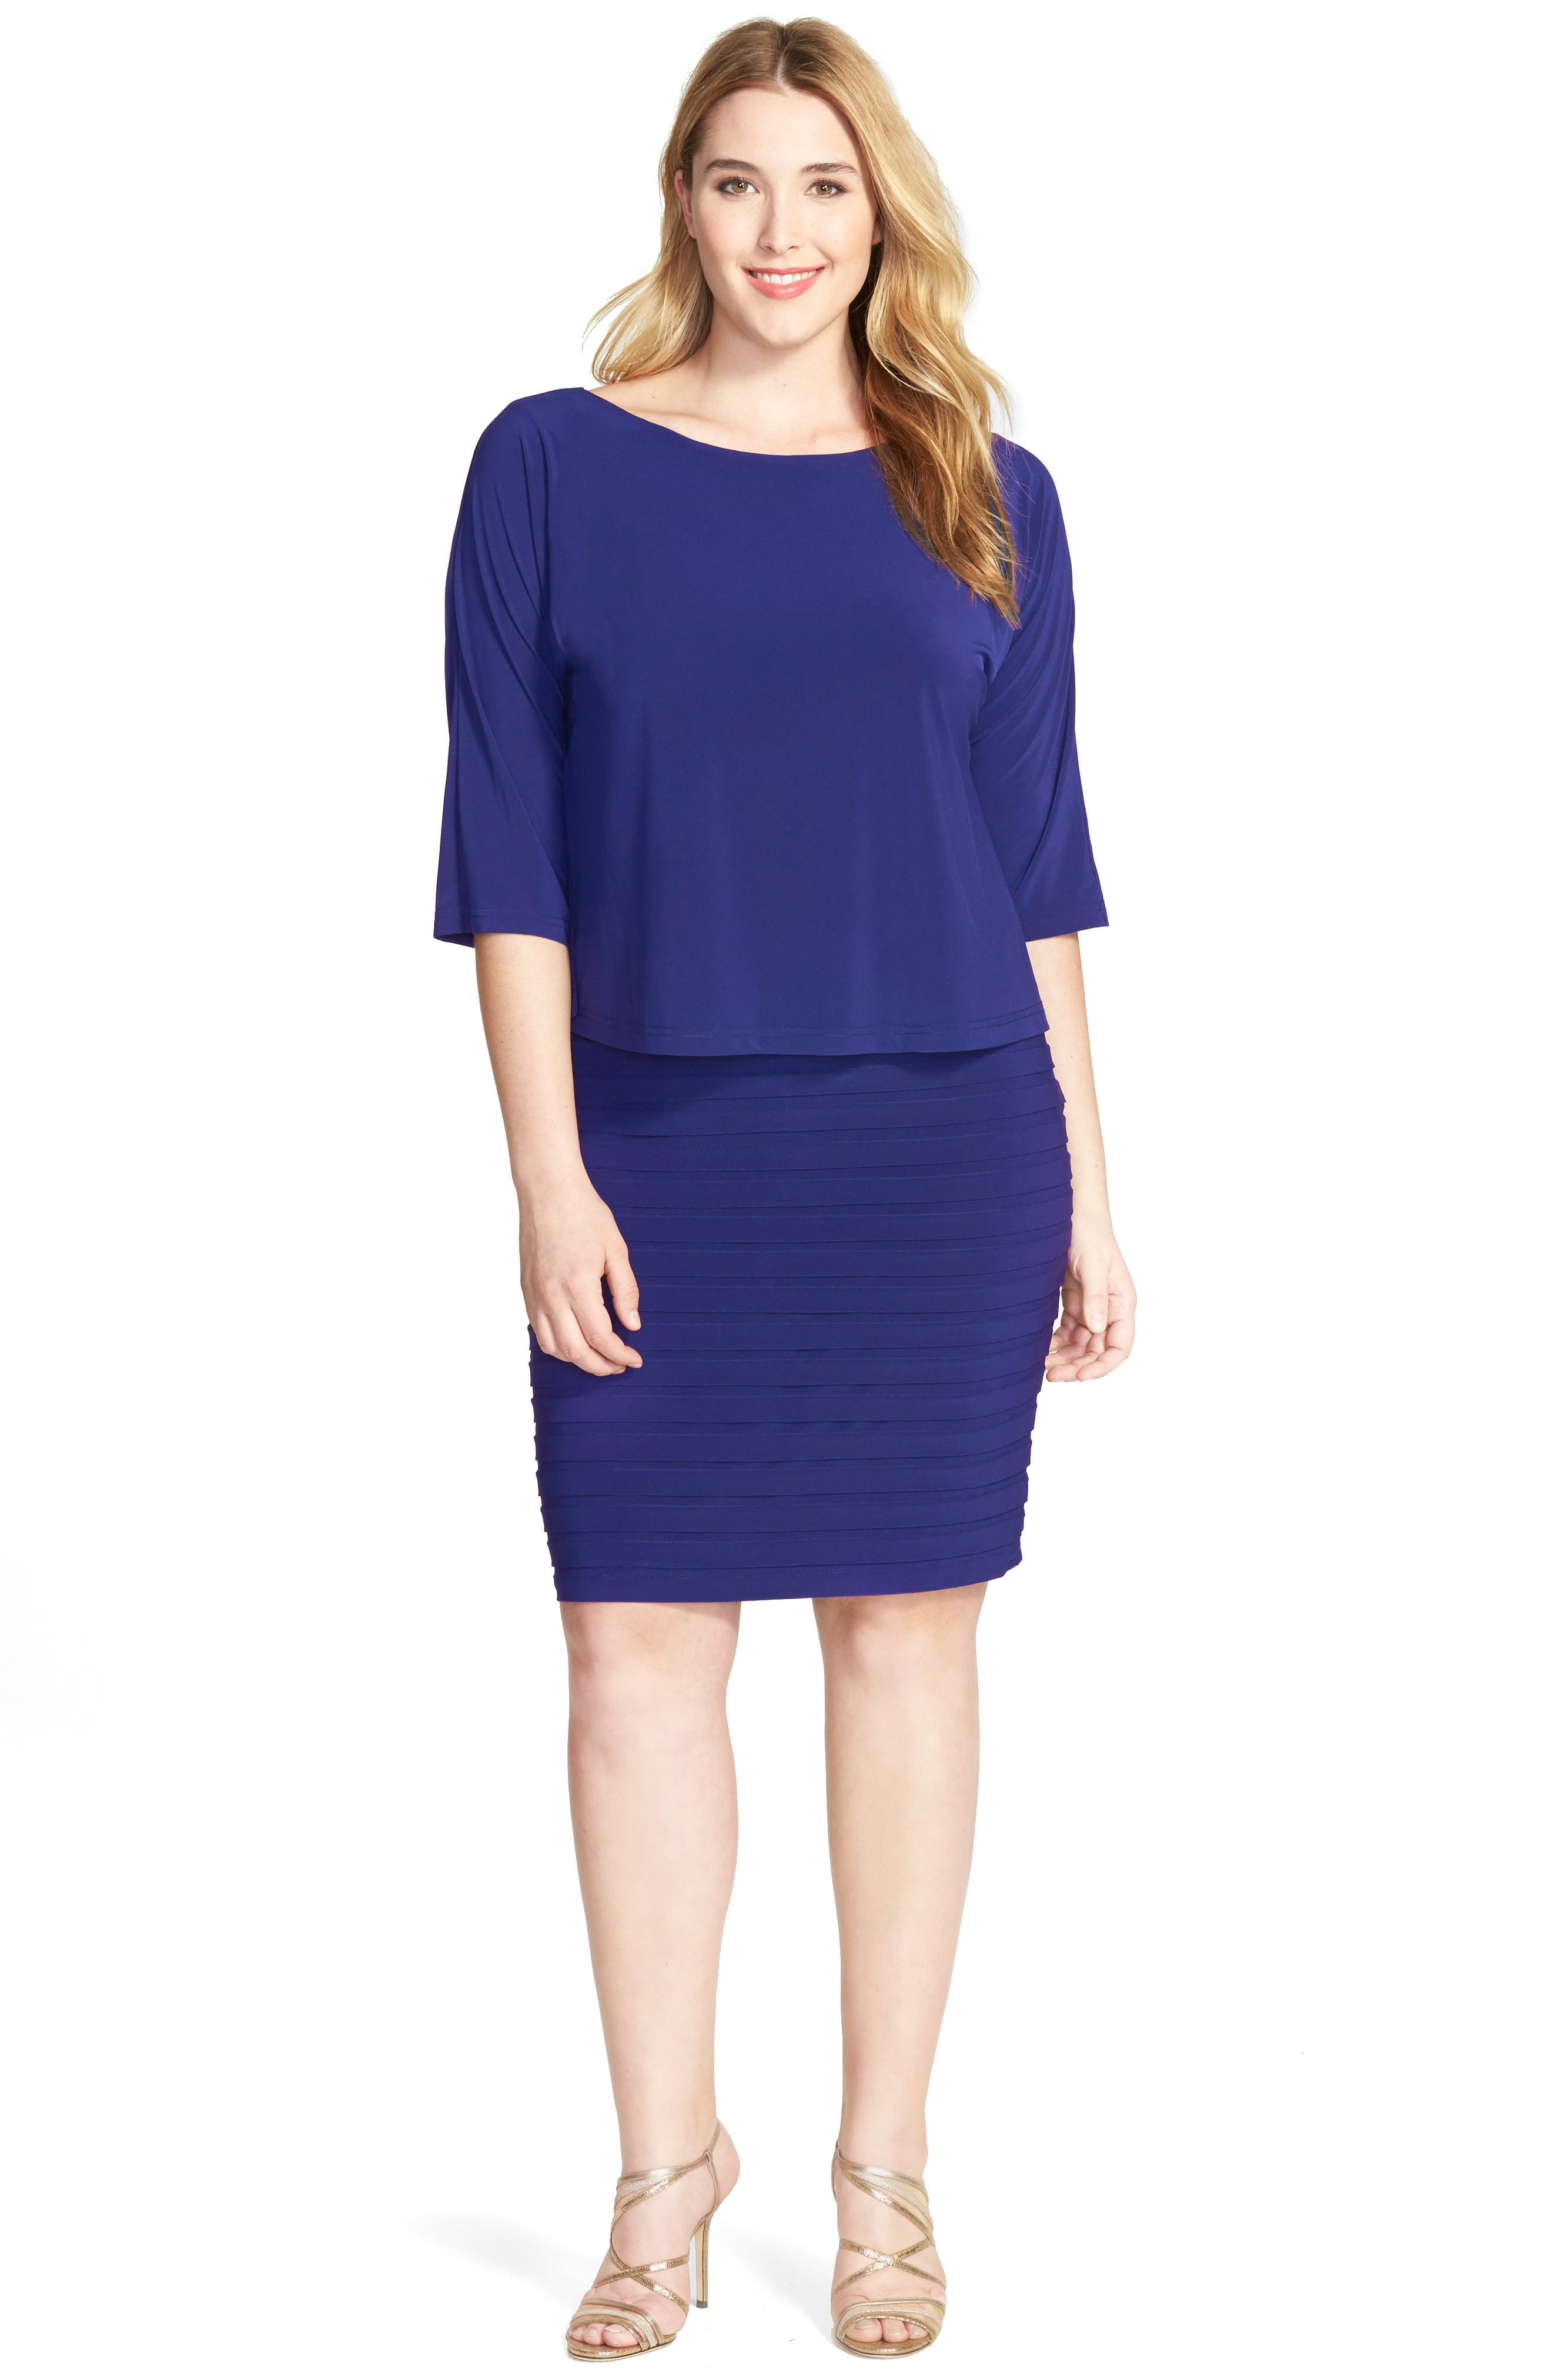 Alternate Image 1 Selected - Adrianna Papell Shutter Pleat Popover Sheath Dress (Plus Size)